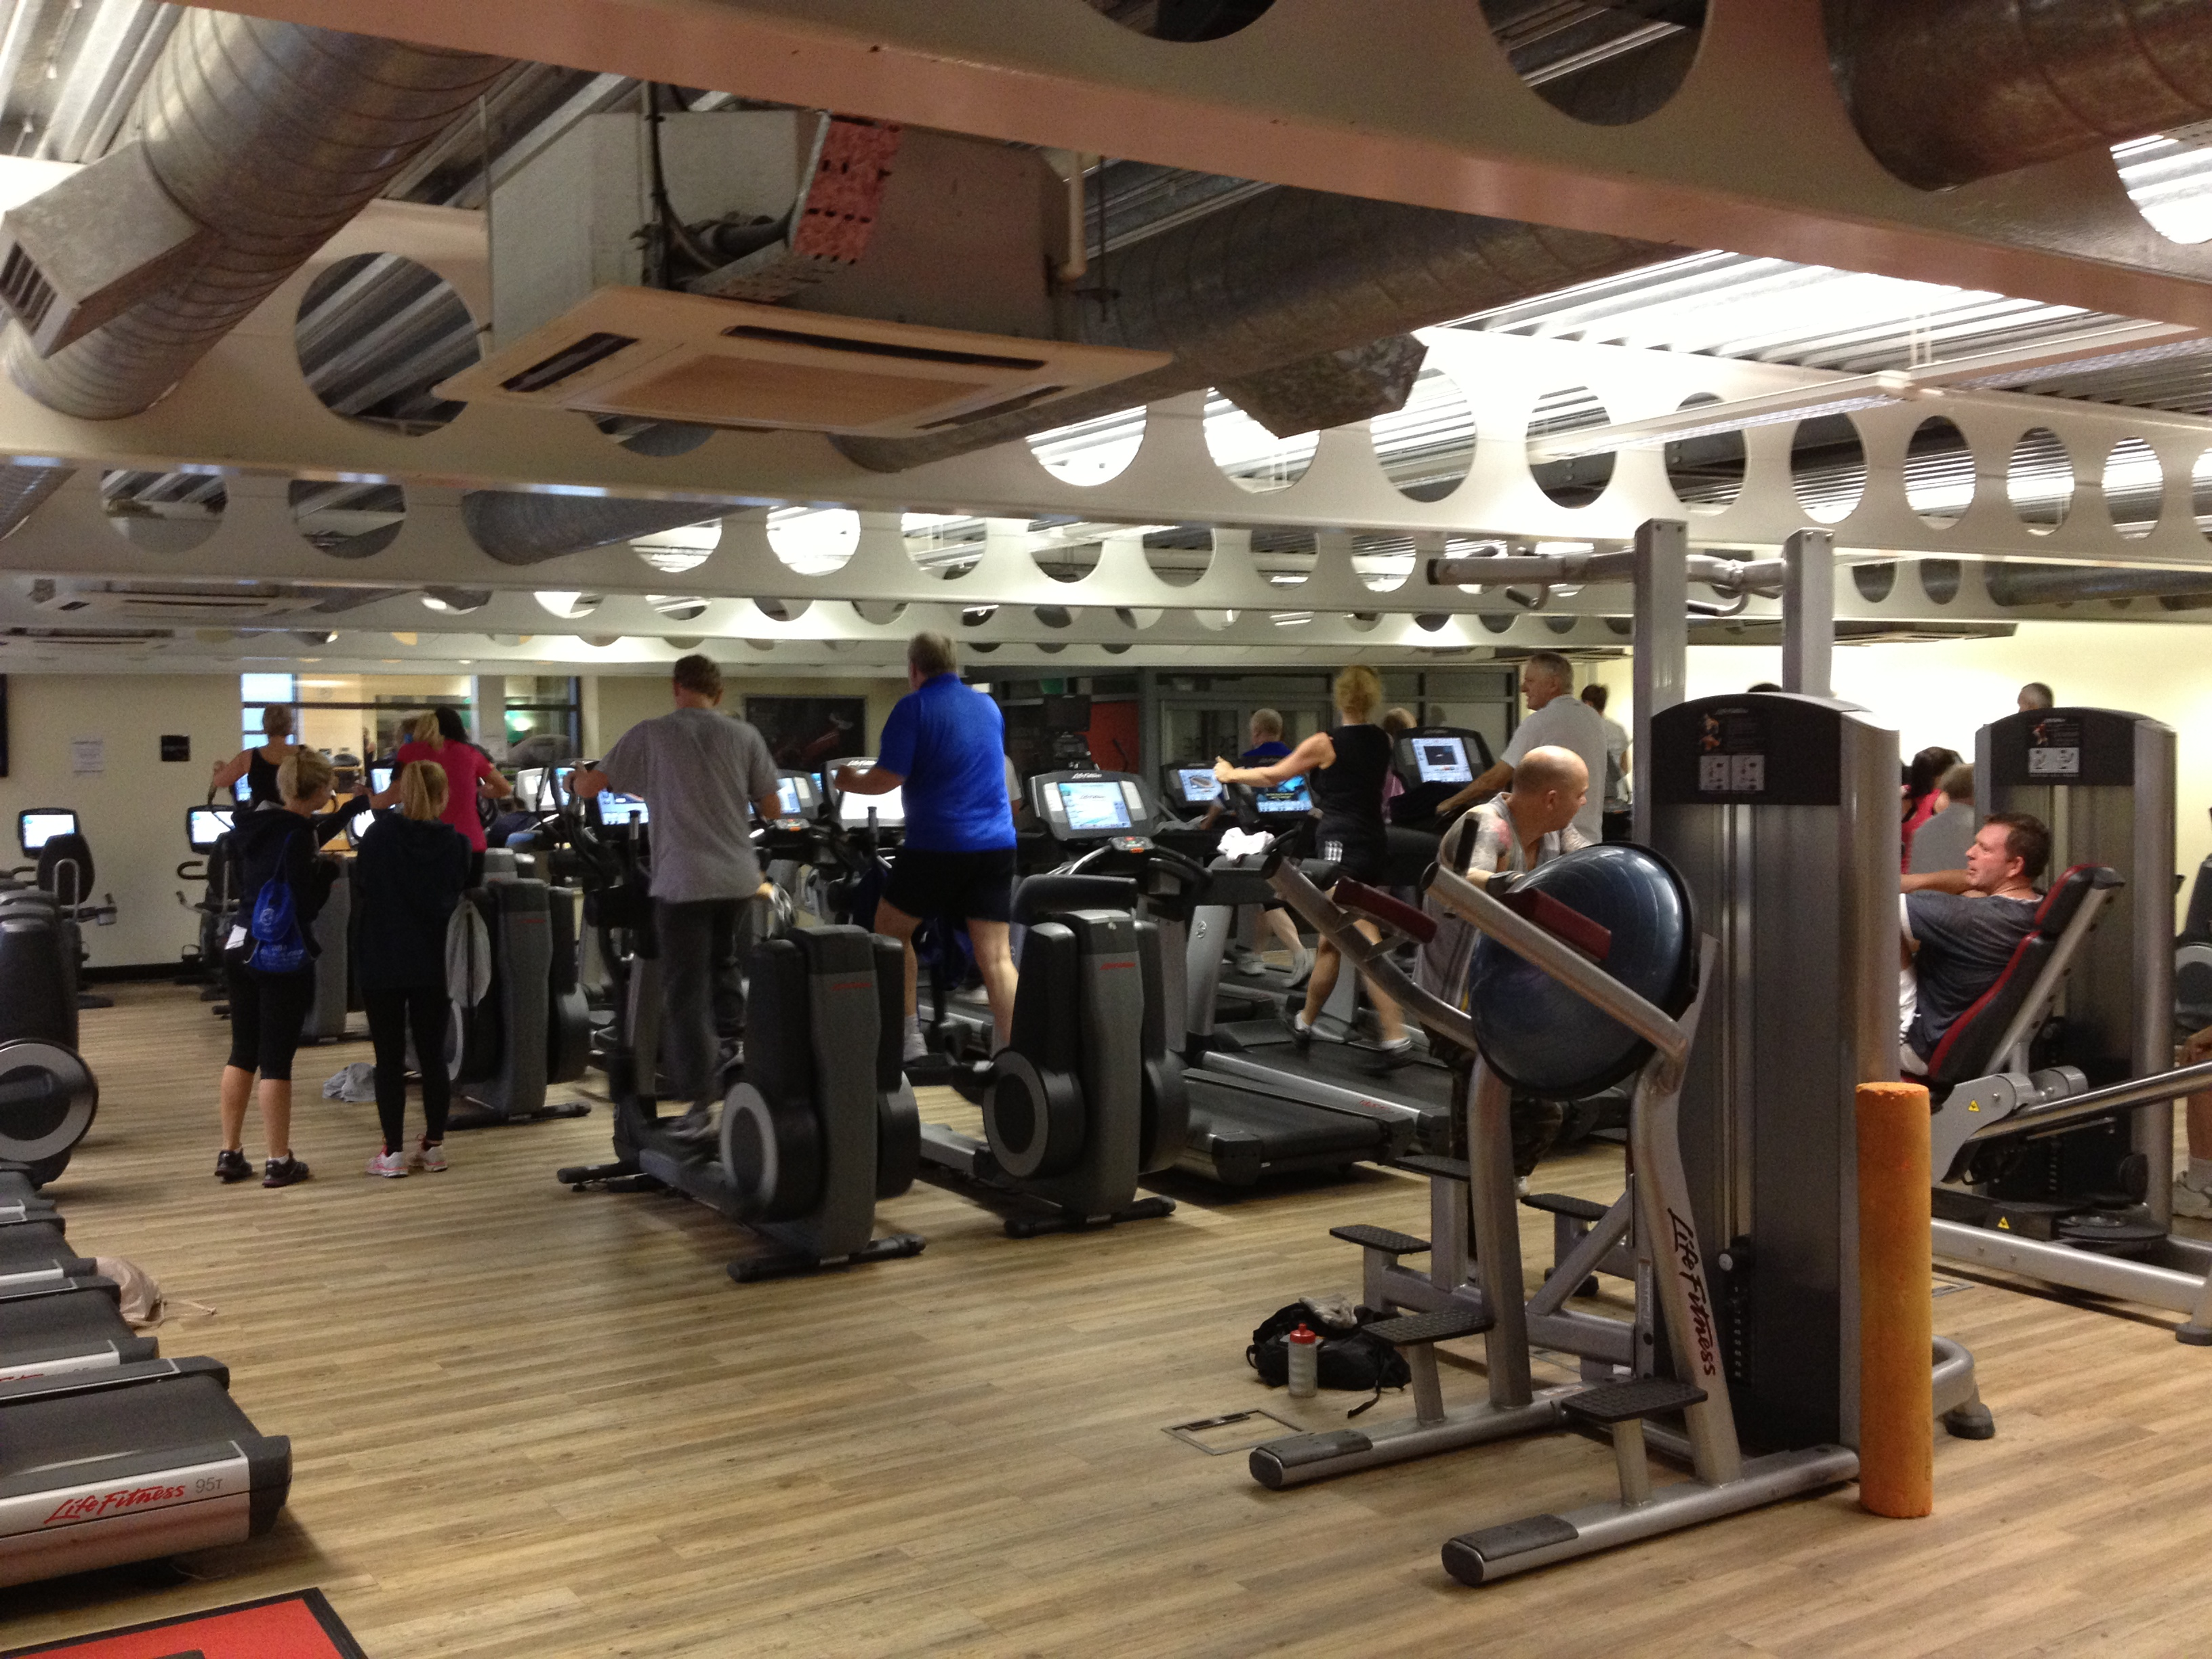 Life Leisure Hazel Grove, Stockport Gym, Personal Trainer Stockport